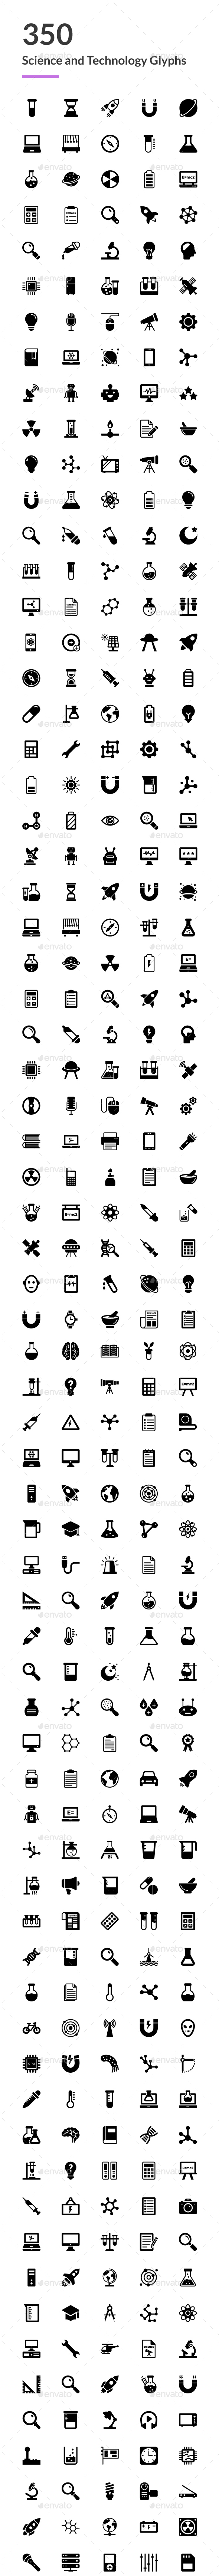 GraphicRiver 350 Science and Technology Icons 20751883